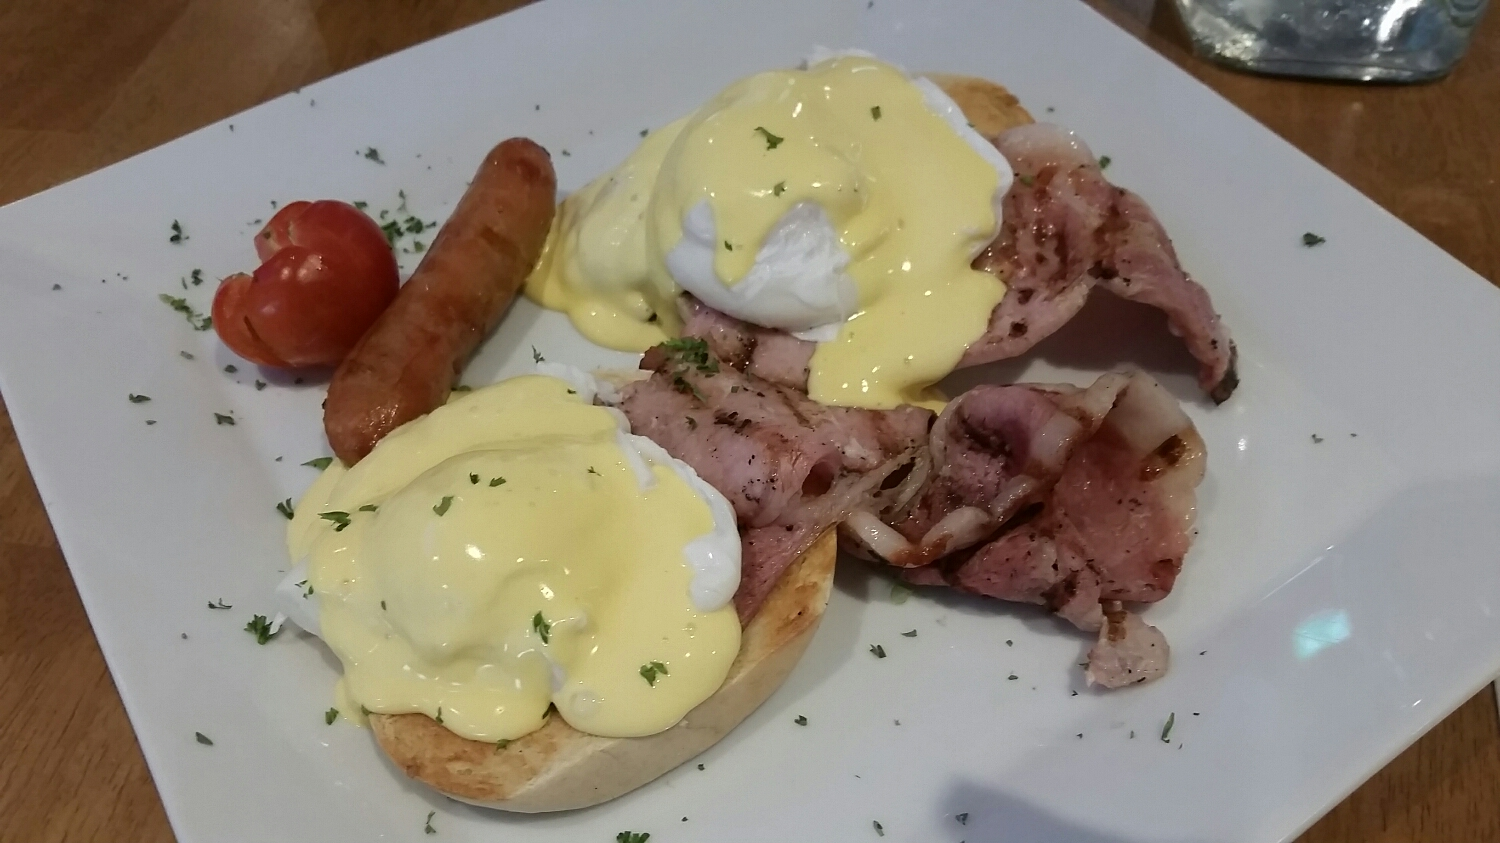 Eggs benedict with Irish bacon and of course a side of sausage. I actually really liked the breakfast sausage even better than the stuff we have at home. It's almost like chicken sausage, different in the way thats it whiter meat with more subtle seasoning.